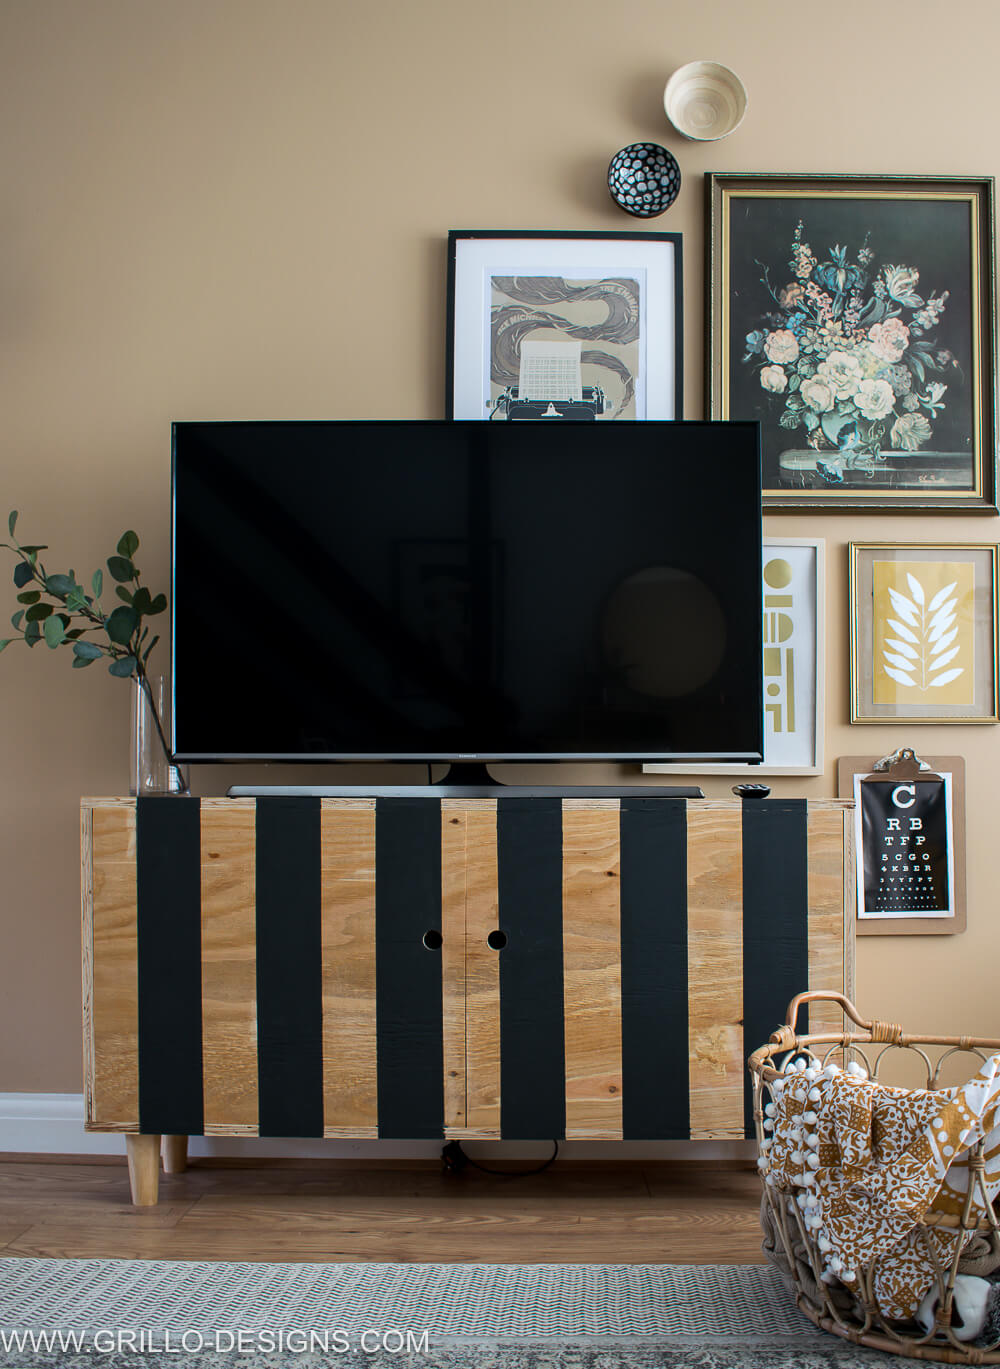 Modern style plywood tv stand for the living room . Perfect tv stand idea for a small space #diytvstand #tvstandideas #tvstandideasforlivingroom #grillodesigns